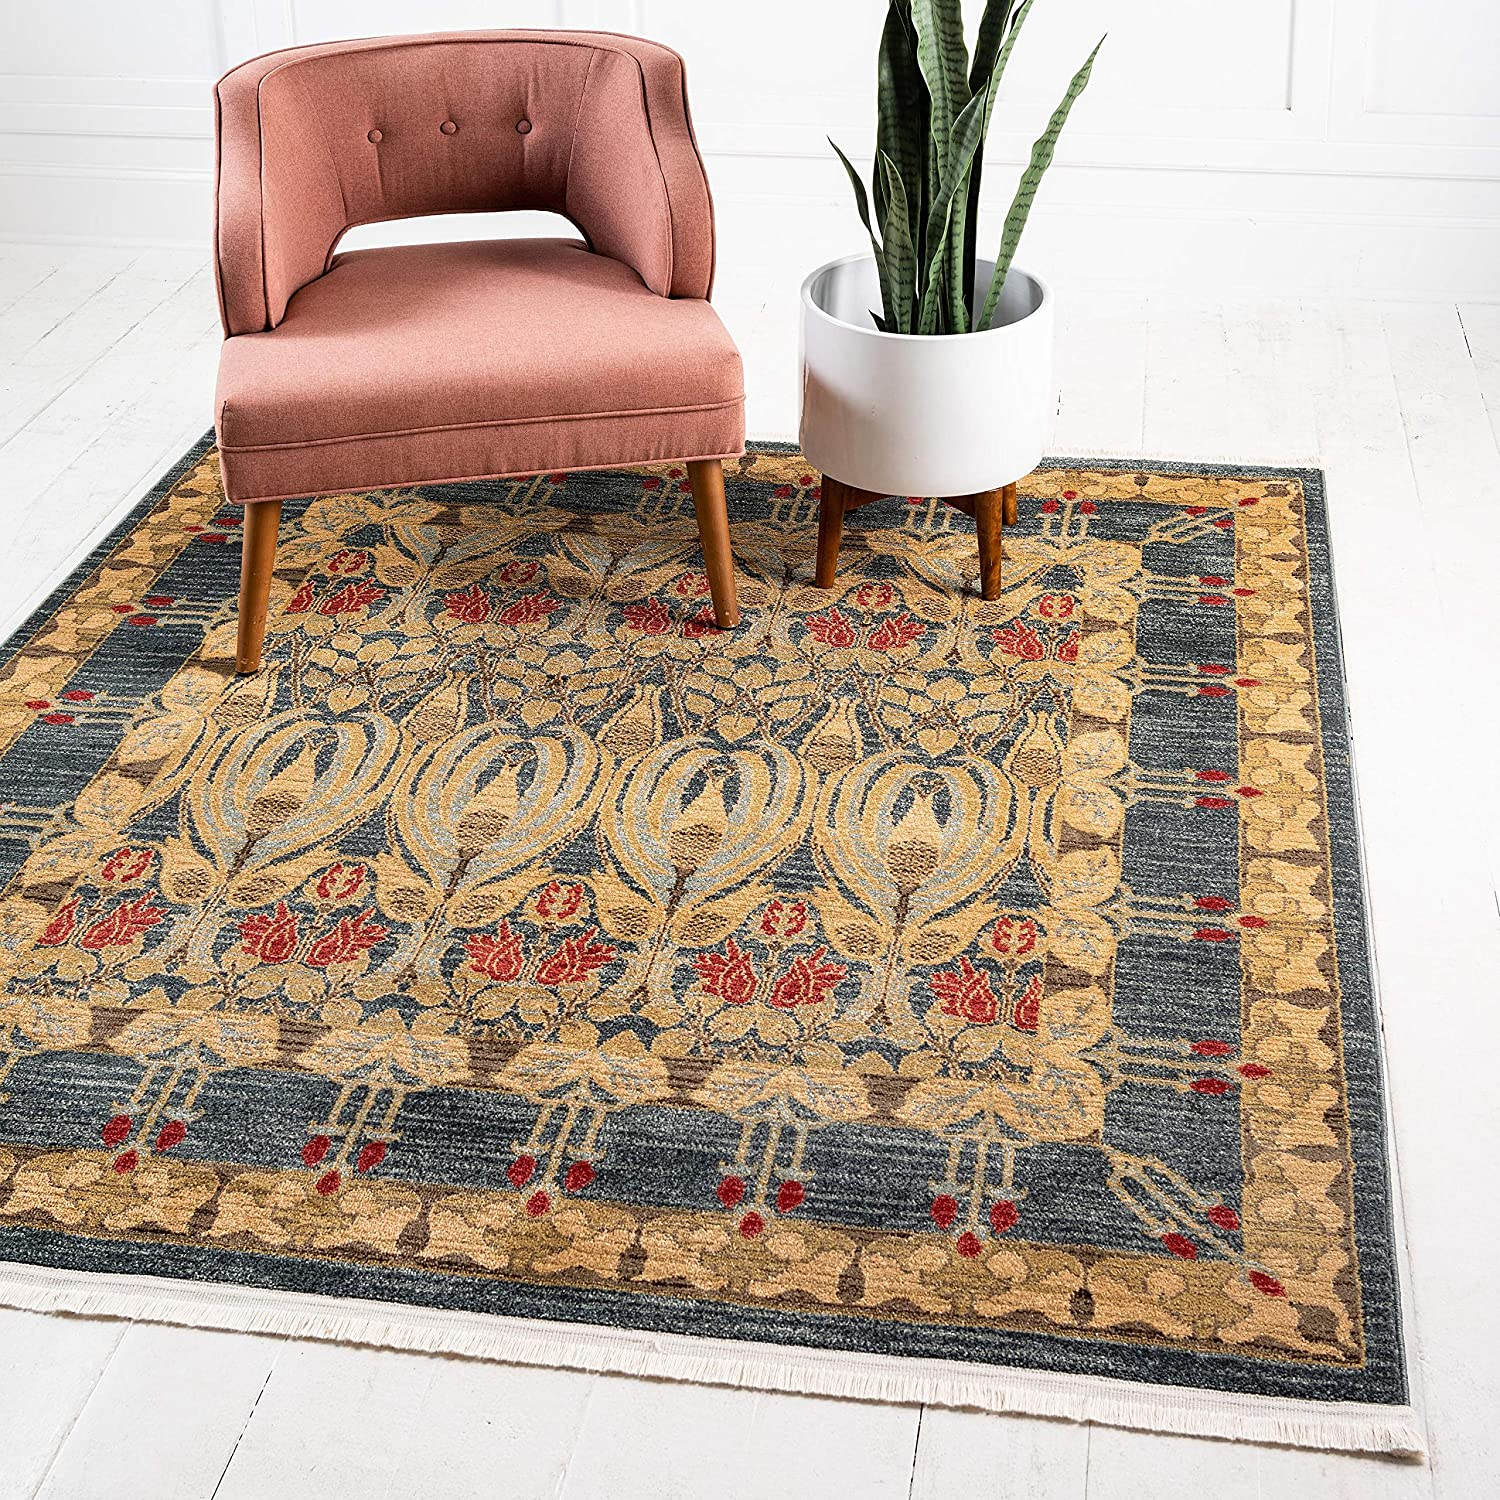 Unique Loom Edinburgh Collection Oriental Traditional French Country Square Rug, 10 Feet, Blue/Beige